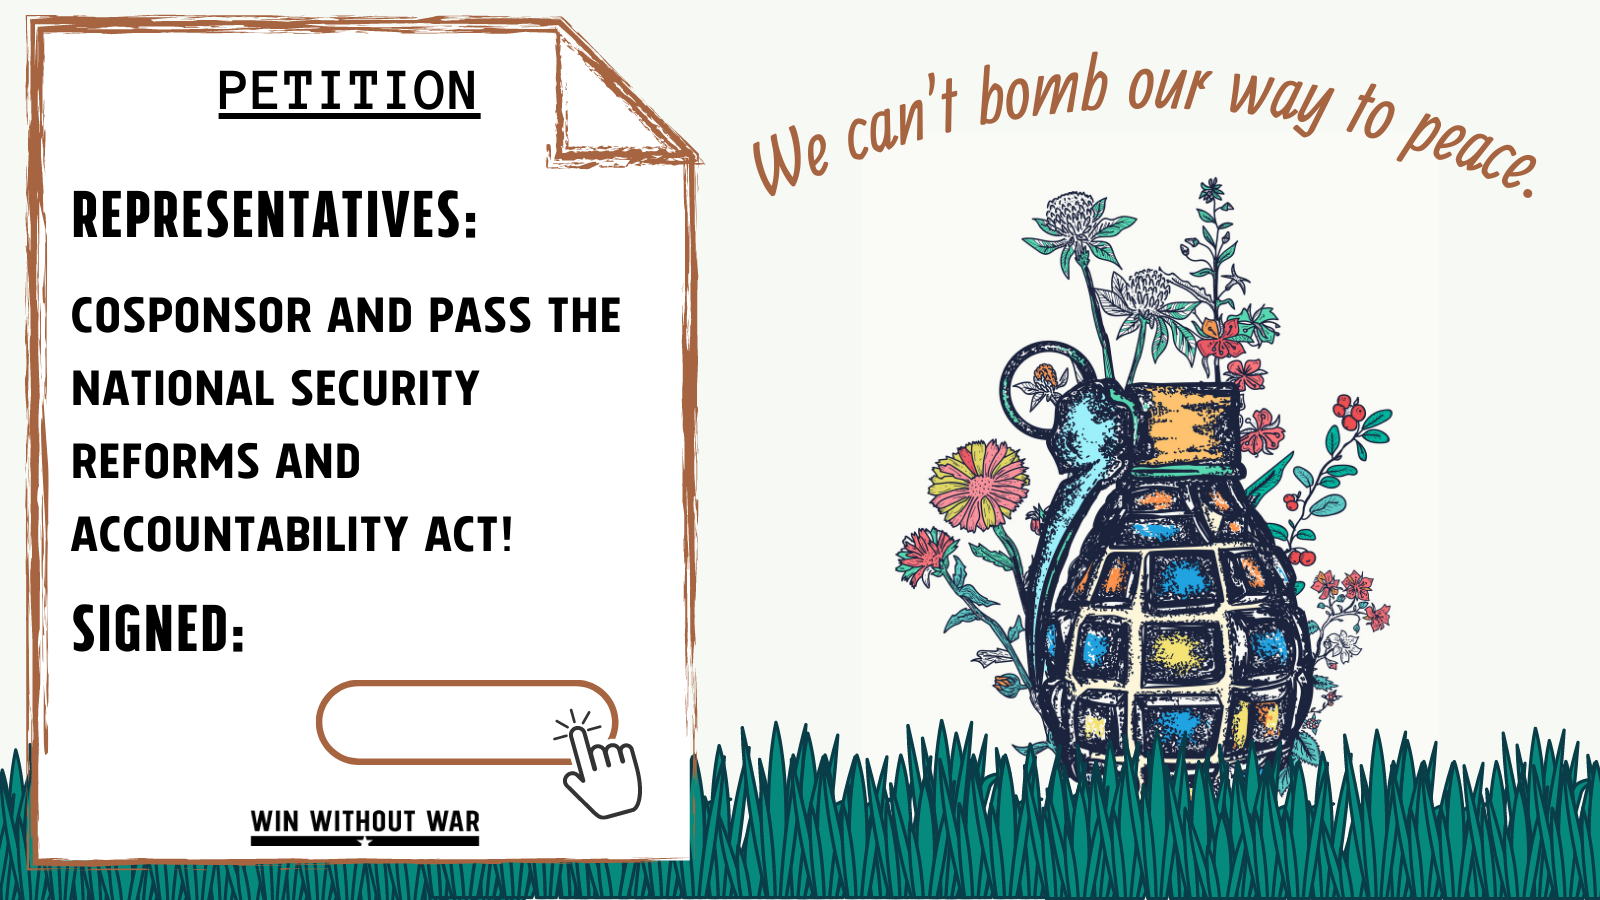 Let's Pass the National Security Reforms and Accountability Act — now!